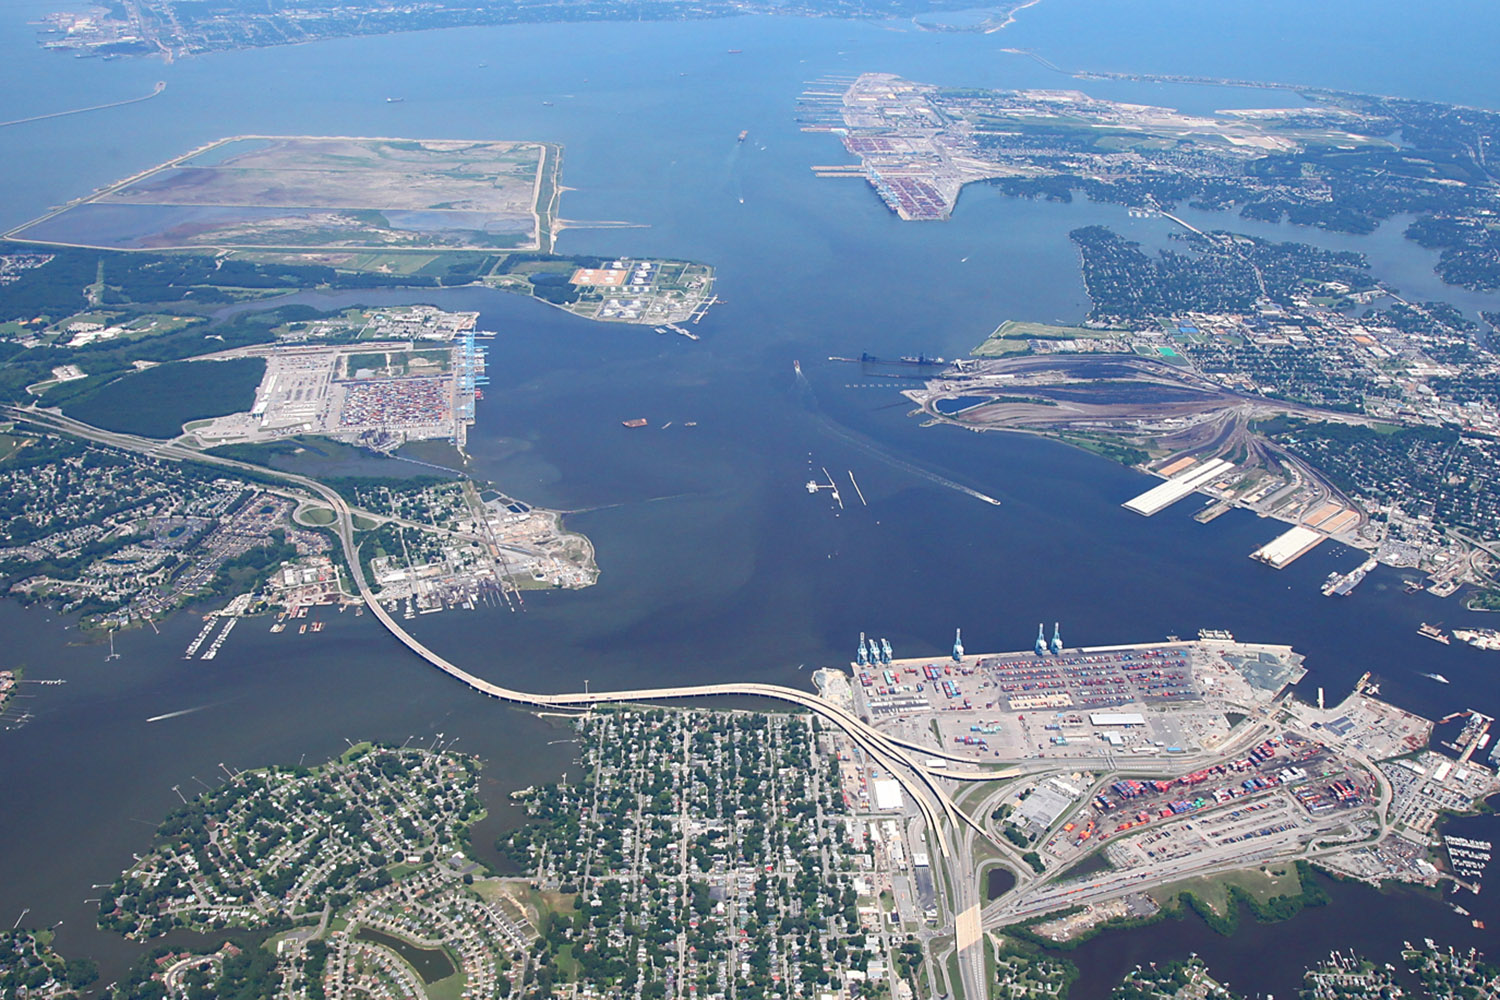 Unrestricted Air Draft Waterways - Virginia port facilities have direct access to sea with no overhead obstacles to impede the shipping of large and upright infrastructure and components, an advantage that differentiates it from every other East Coast state.